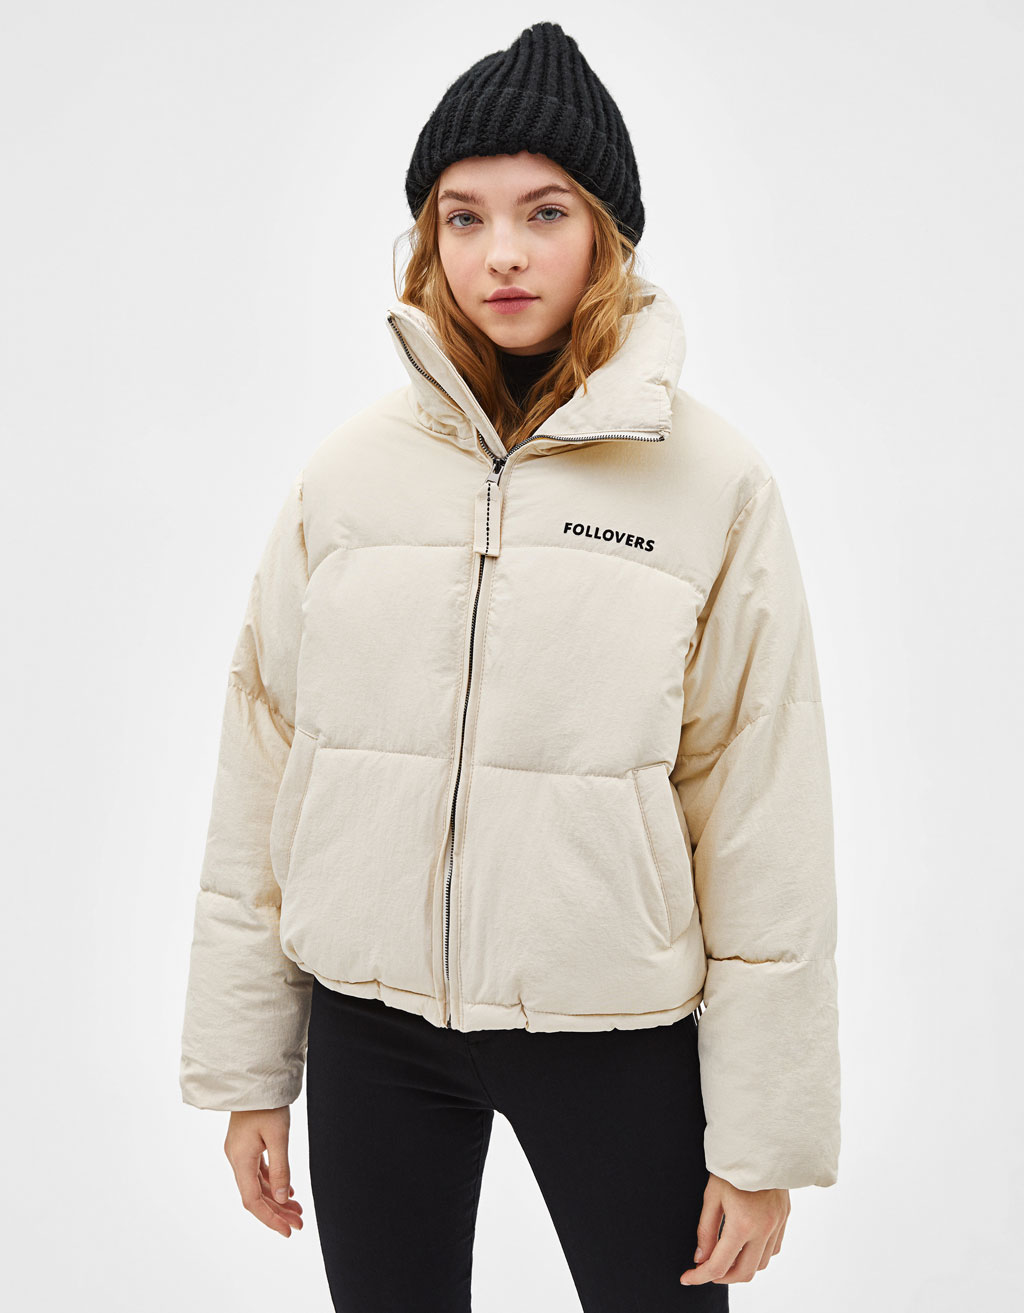 'Follovers' puffer jacket